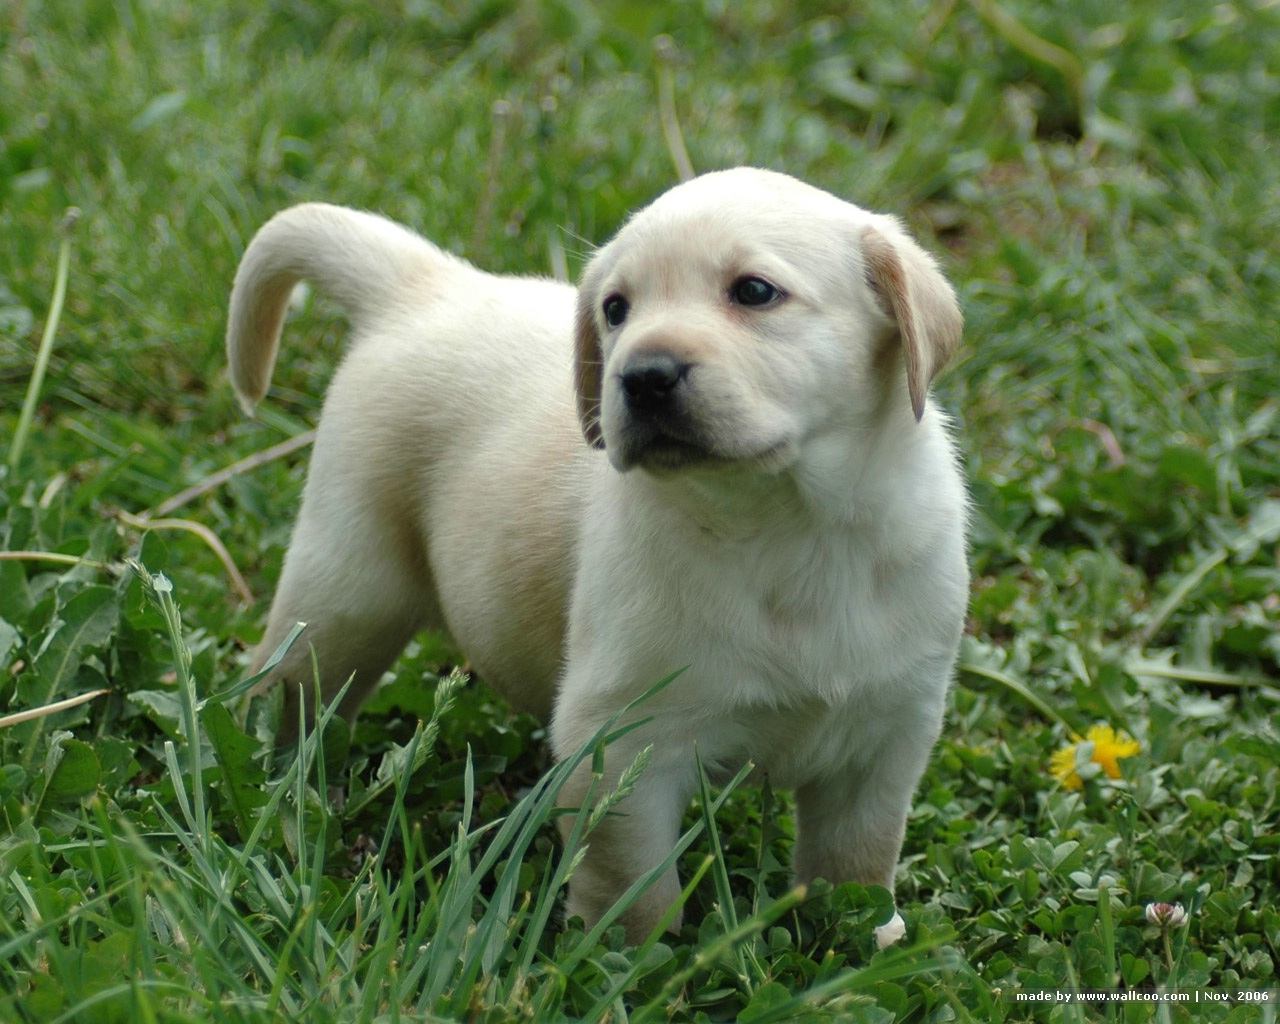 Labrador Retriever puppies 345962551MqYEeM fsjpg 1280x1024